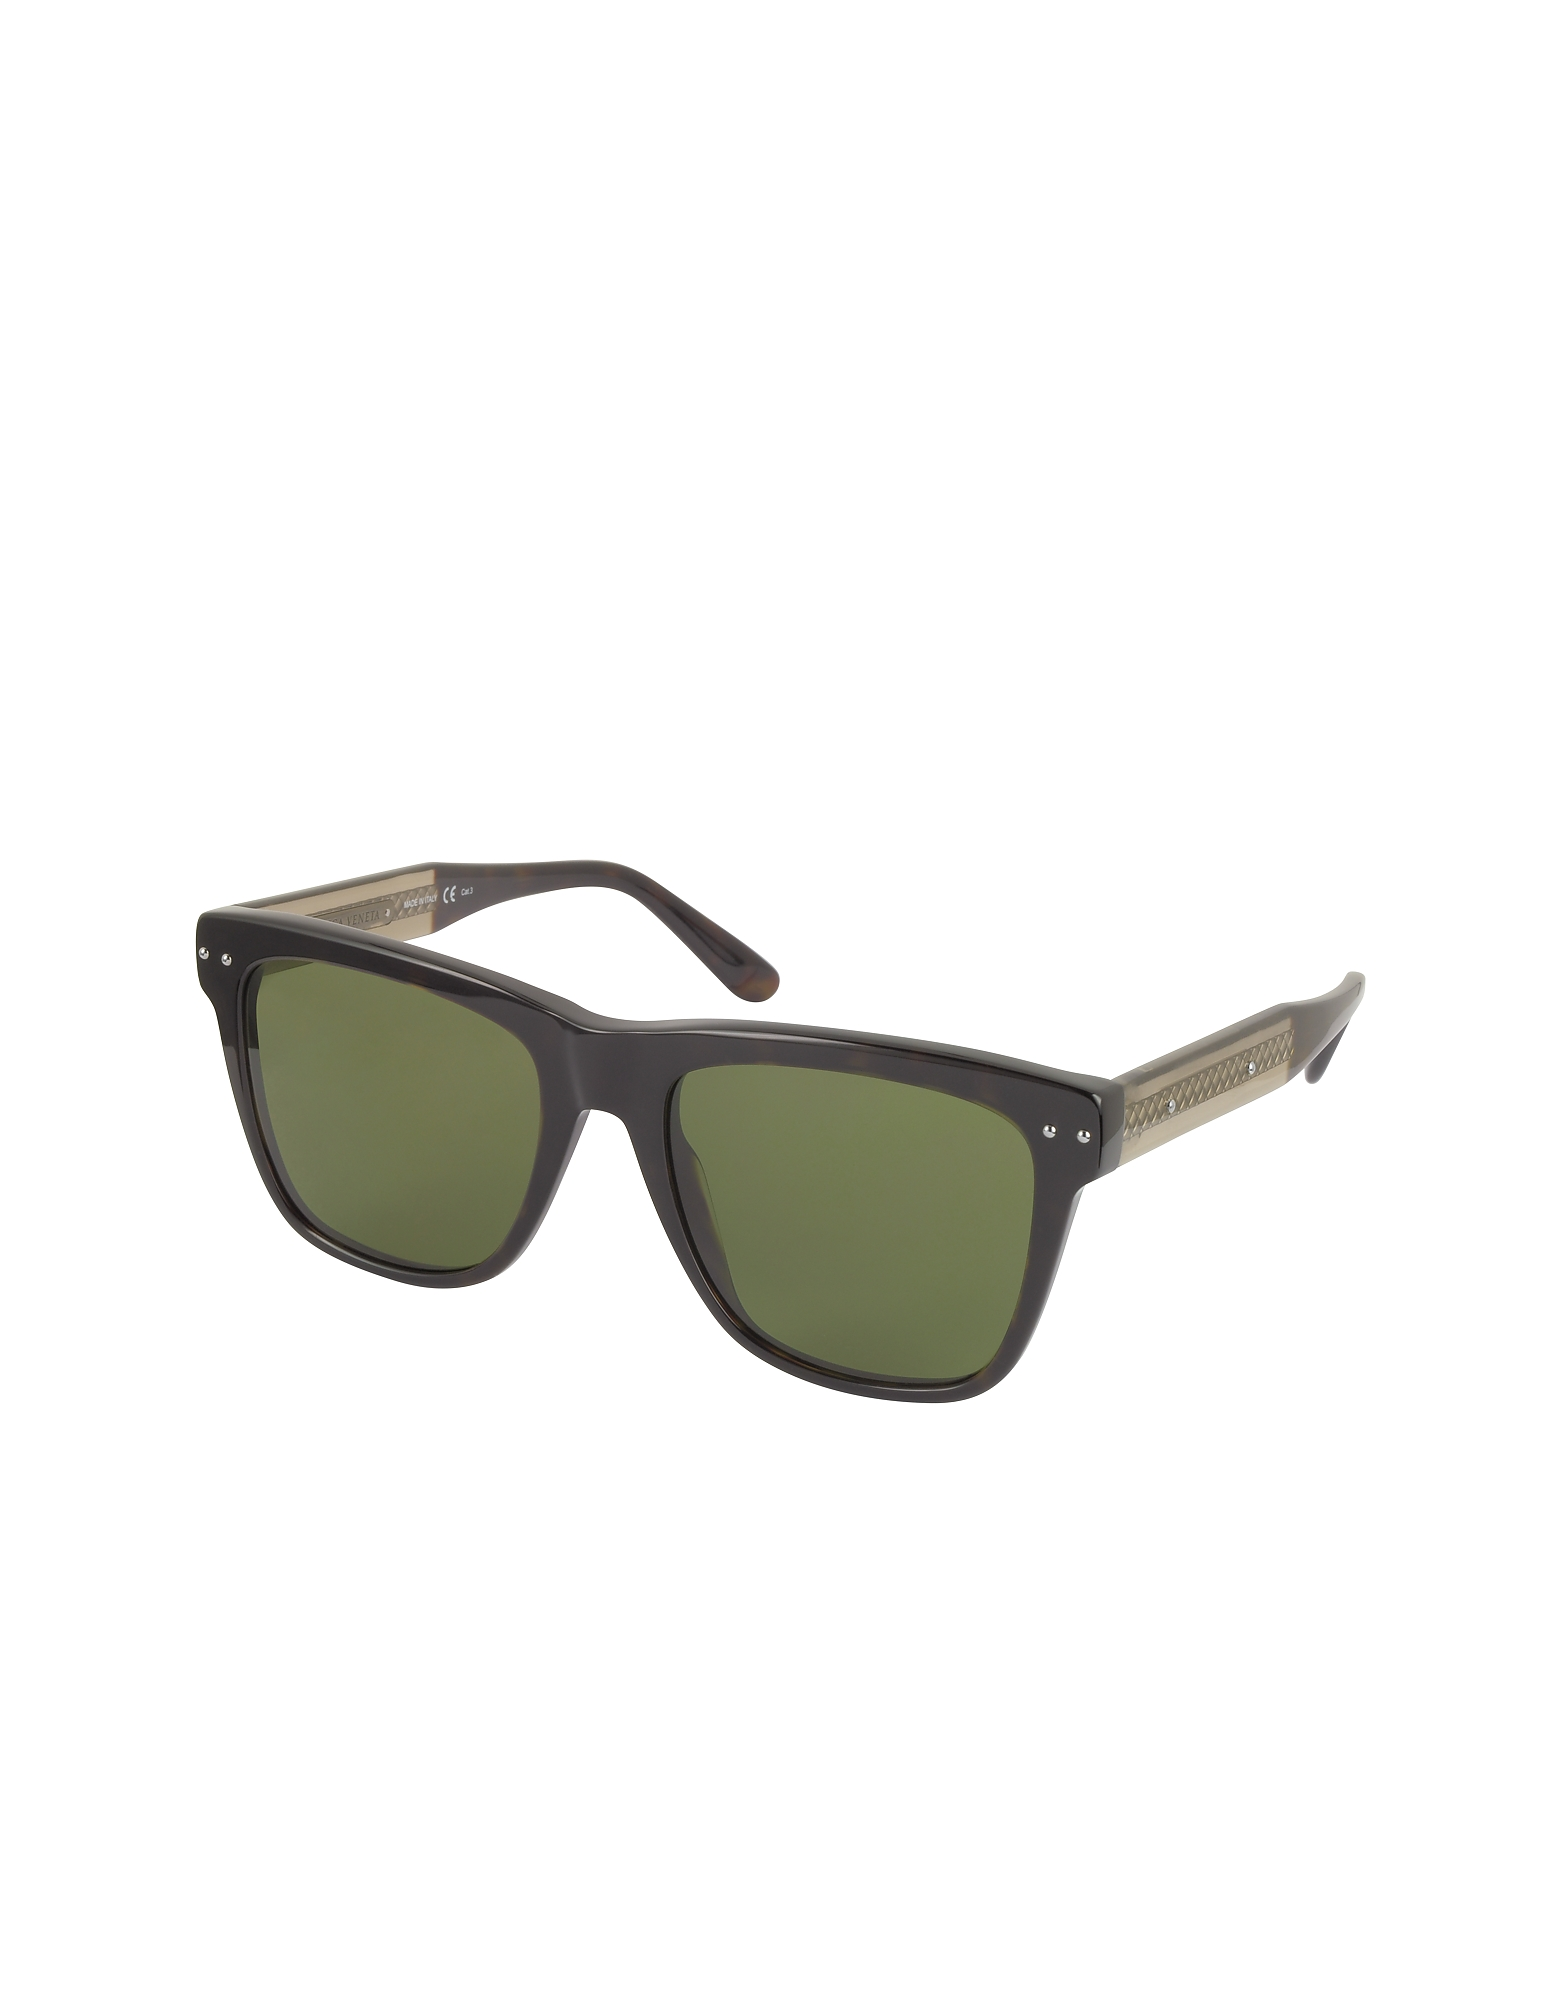 BV0098S 005 Light Havana Acetate Frame Unisex Sunglasses от Forzieri.com INT